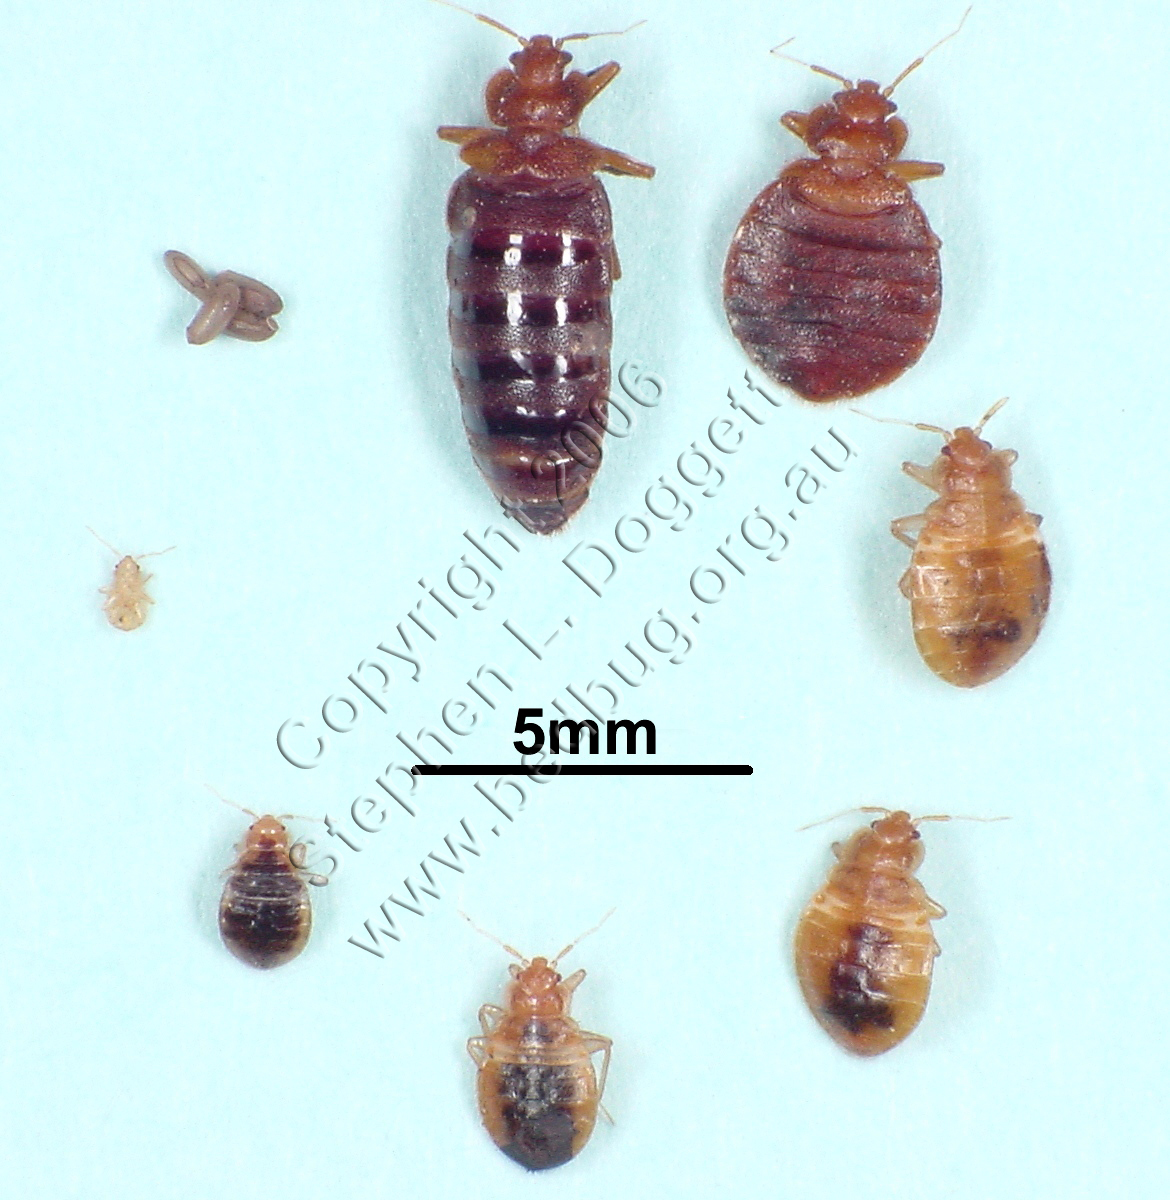 Bed bugs: do I have them? Are these bed bug bites?